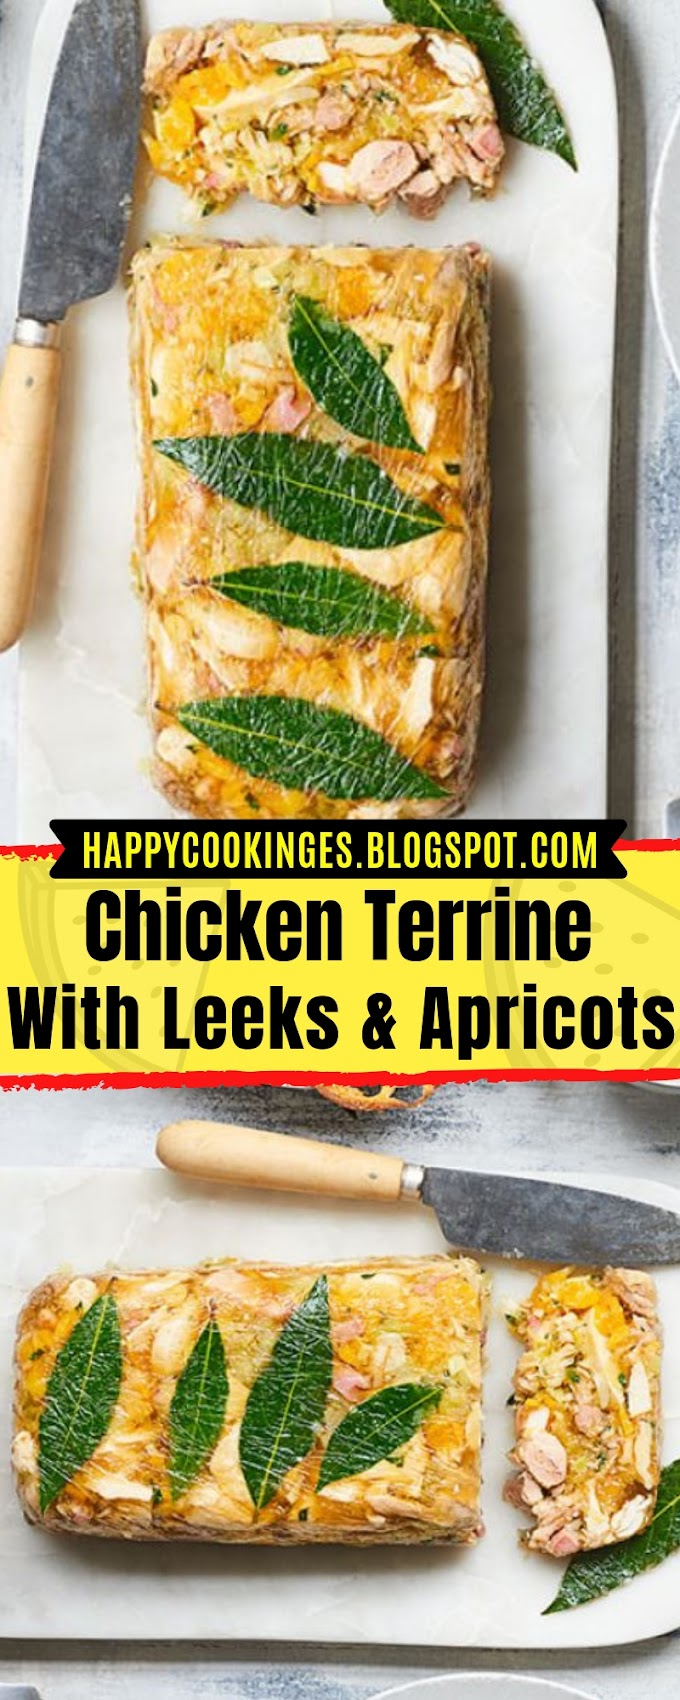 Chicken Terrine With Leeks & Apricots